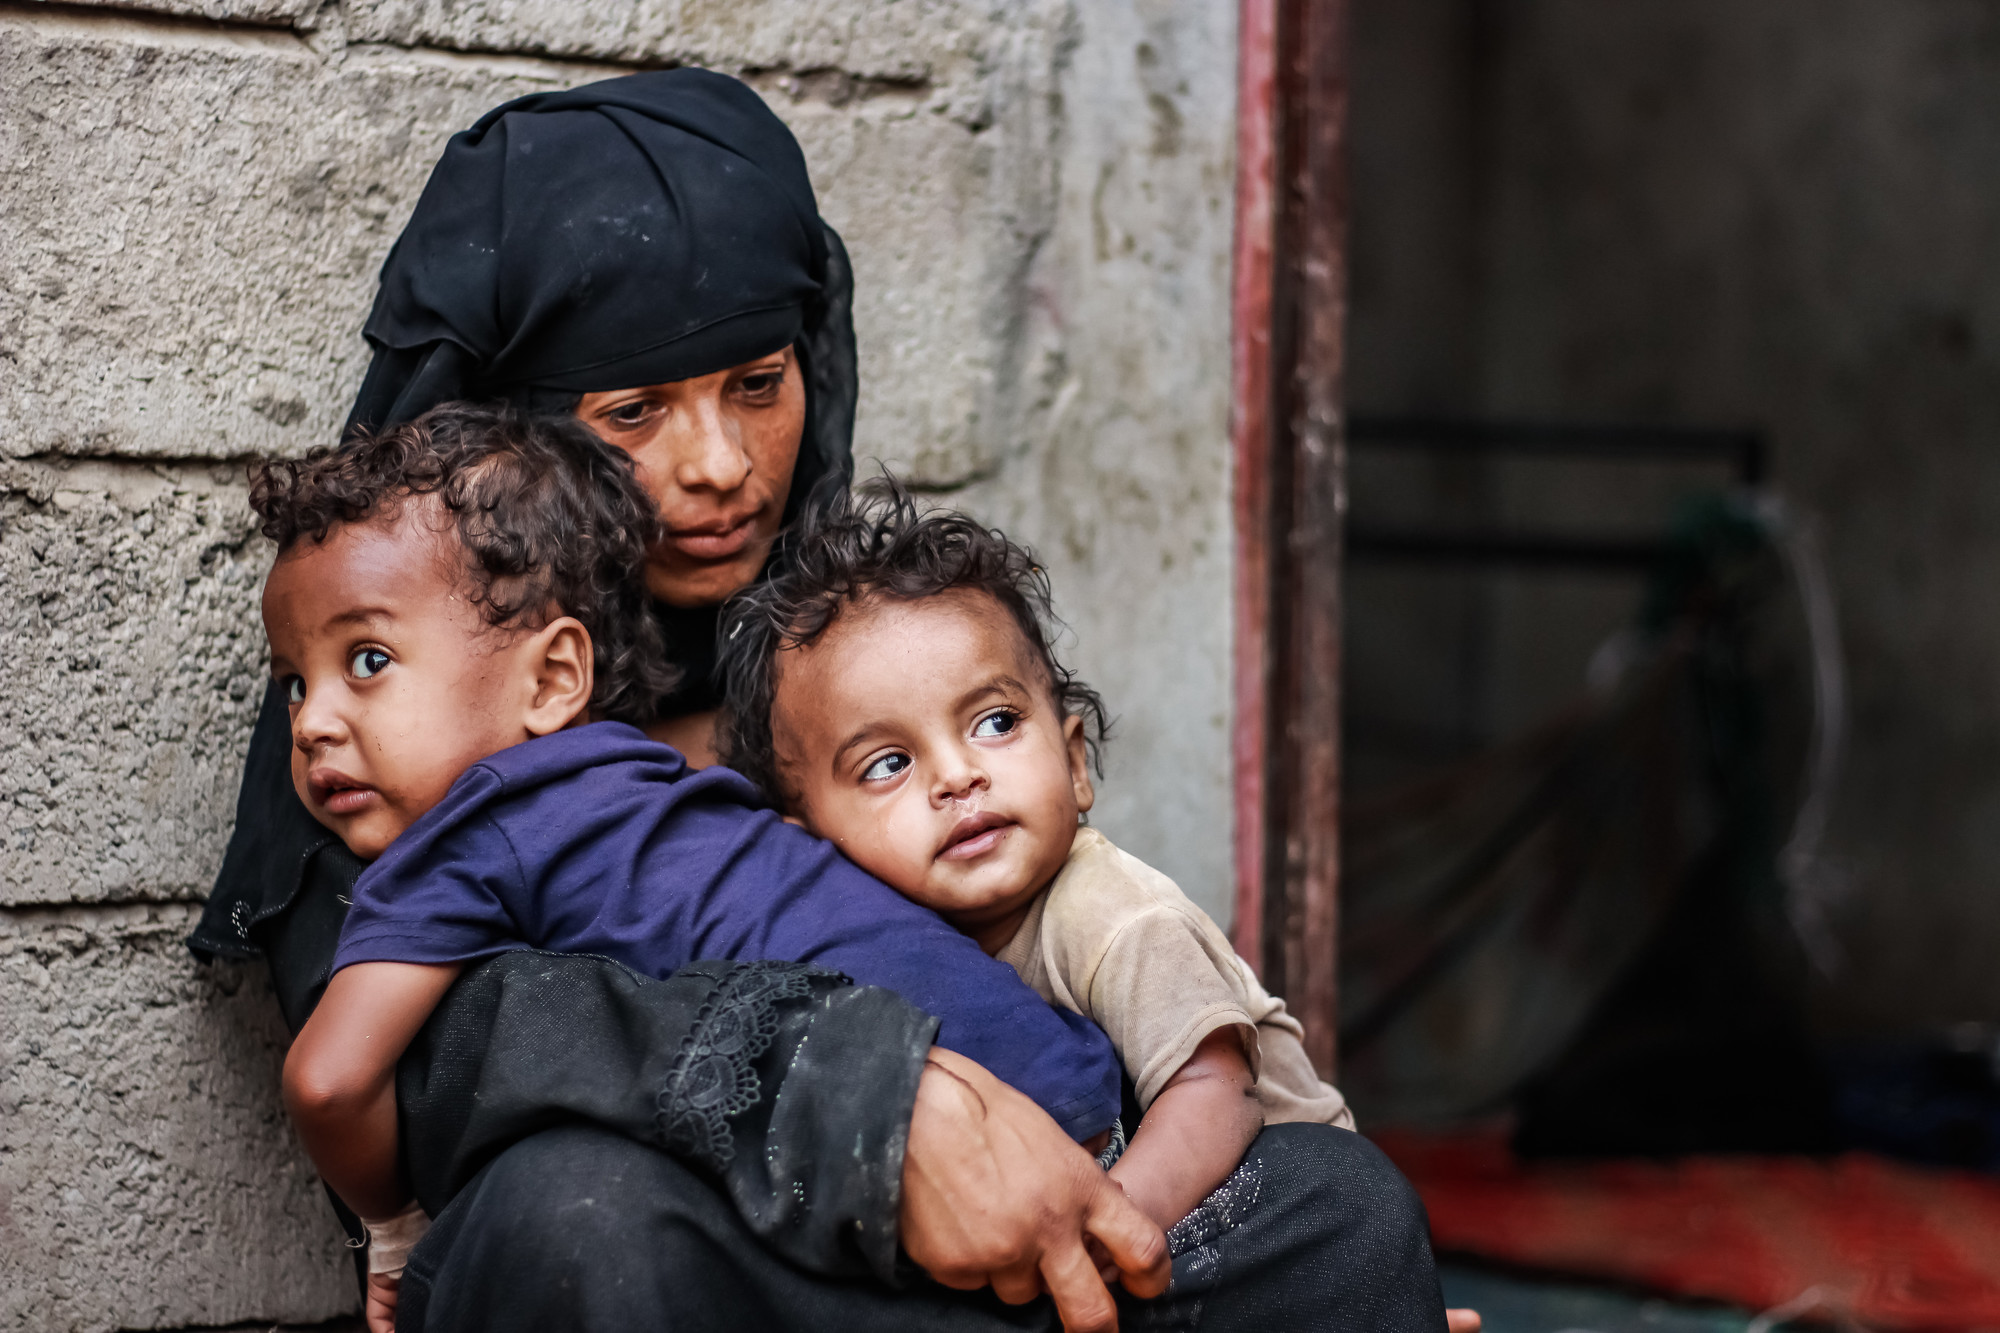 A displaced Yemeni mother of holds two of her children just outside the door of their cinder block home.